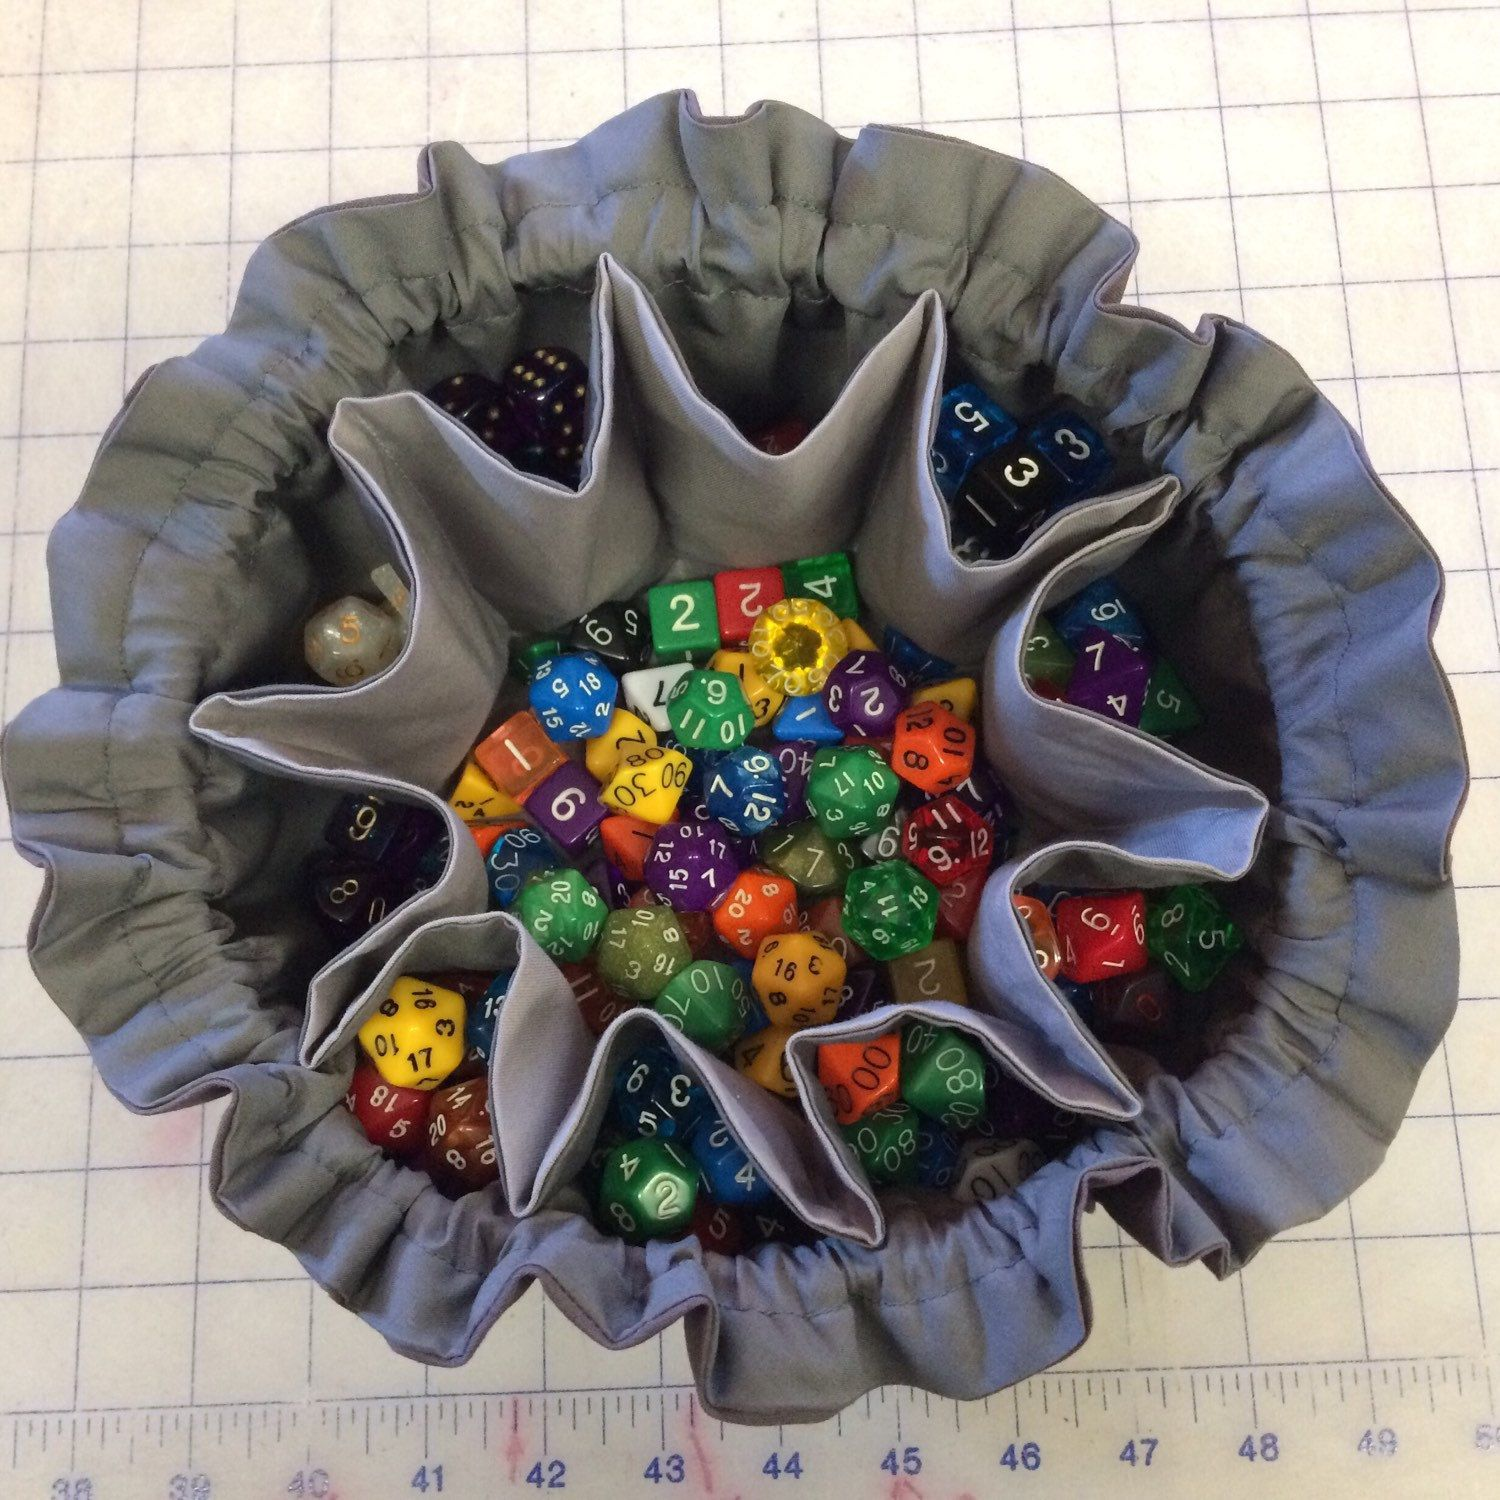 Bag Of Many Dice With 10 Pockets